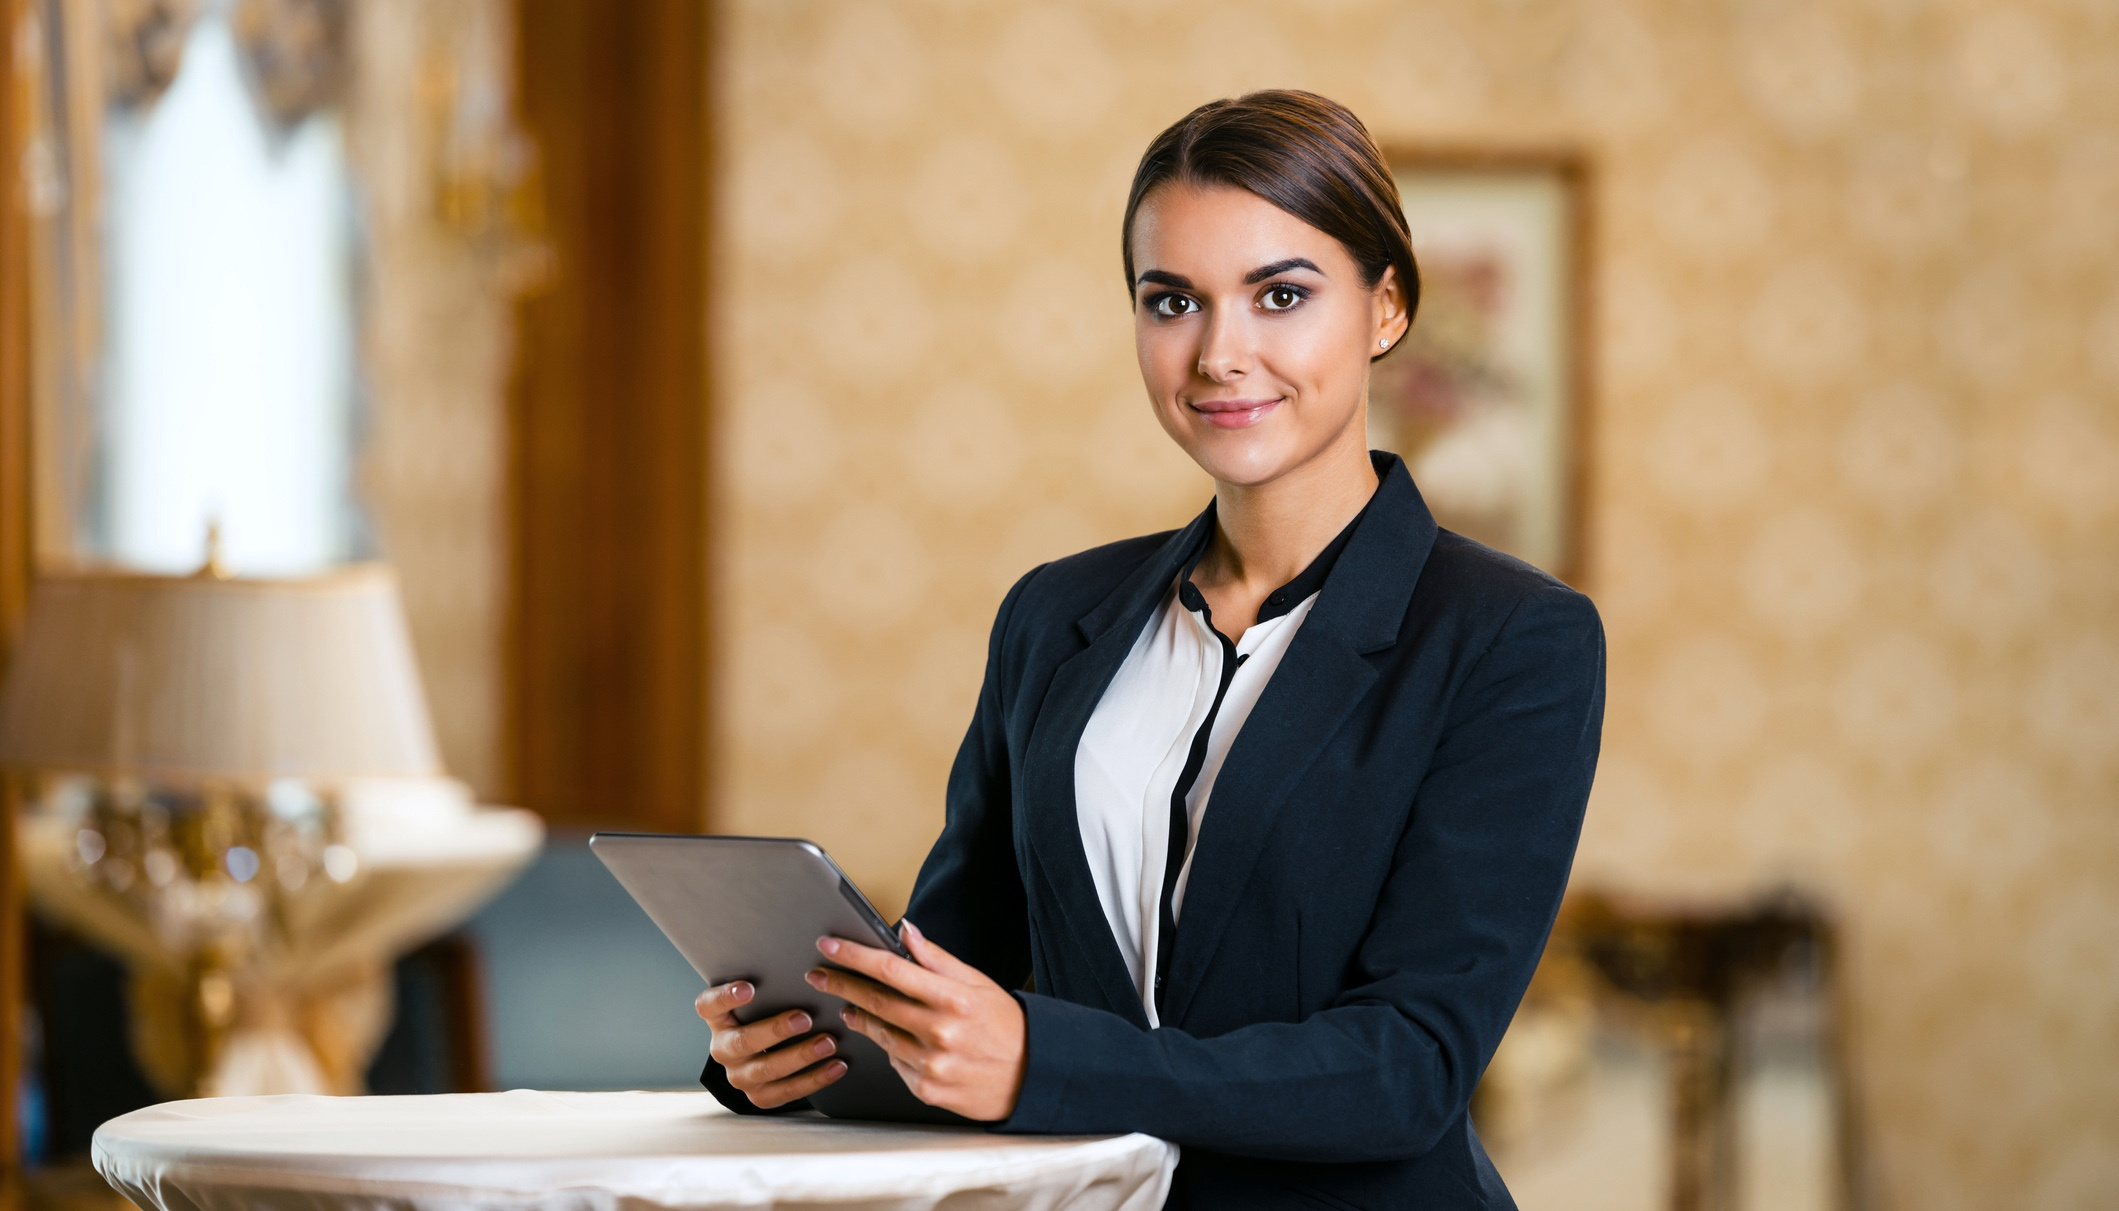 3 Career Opportunities You Can Pursue After Hospitality Training